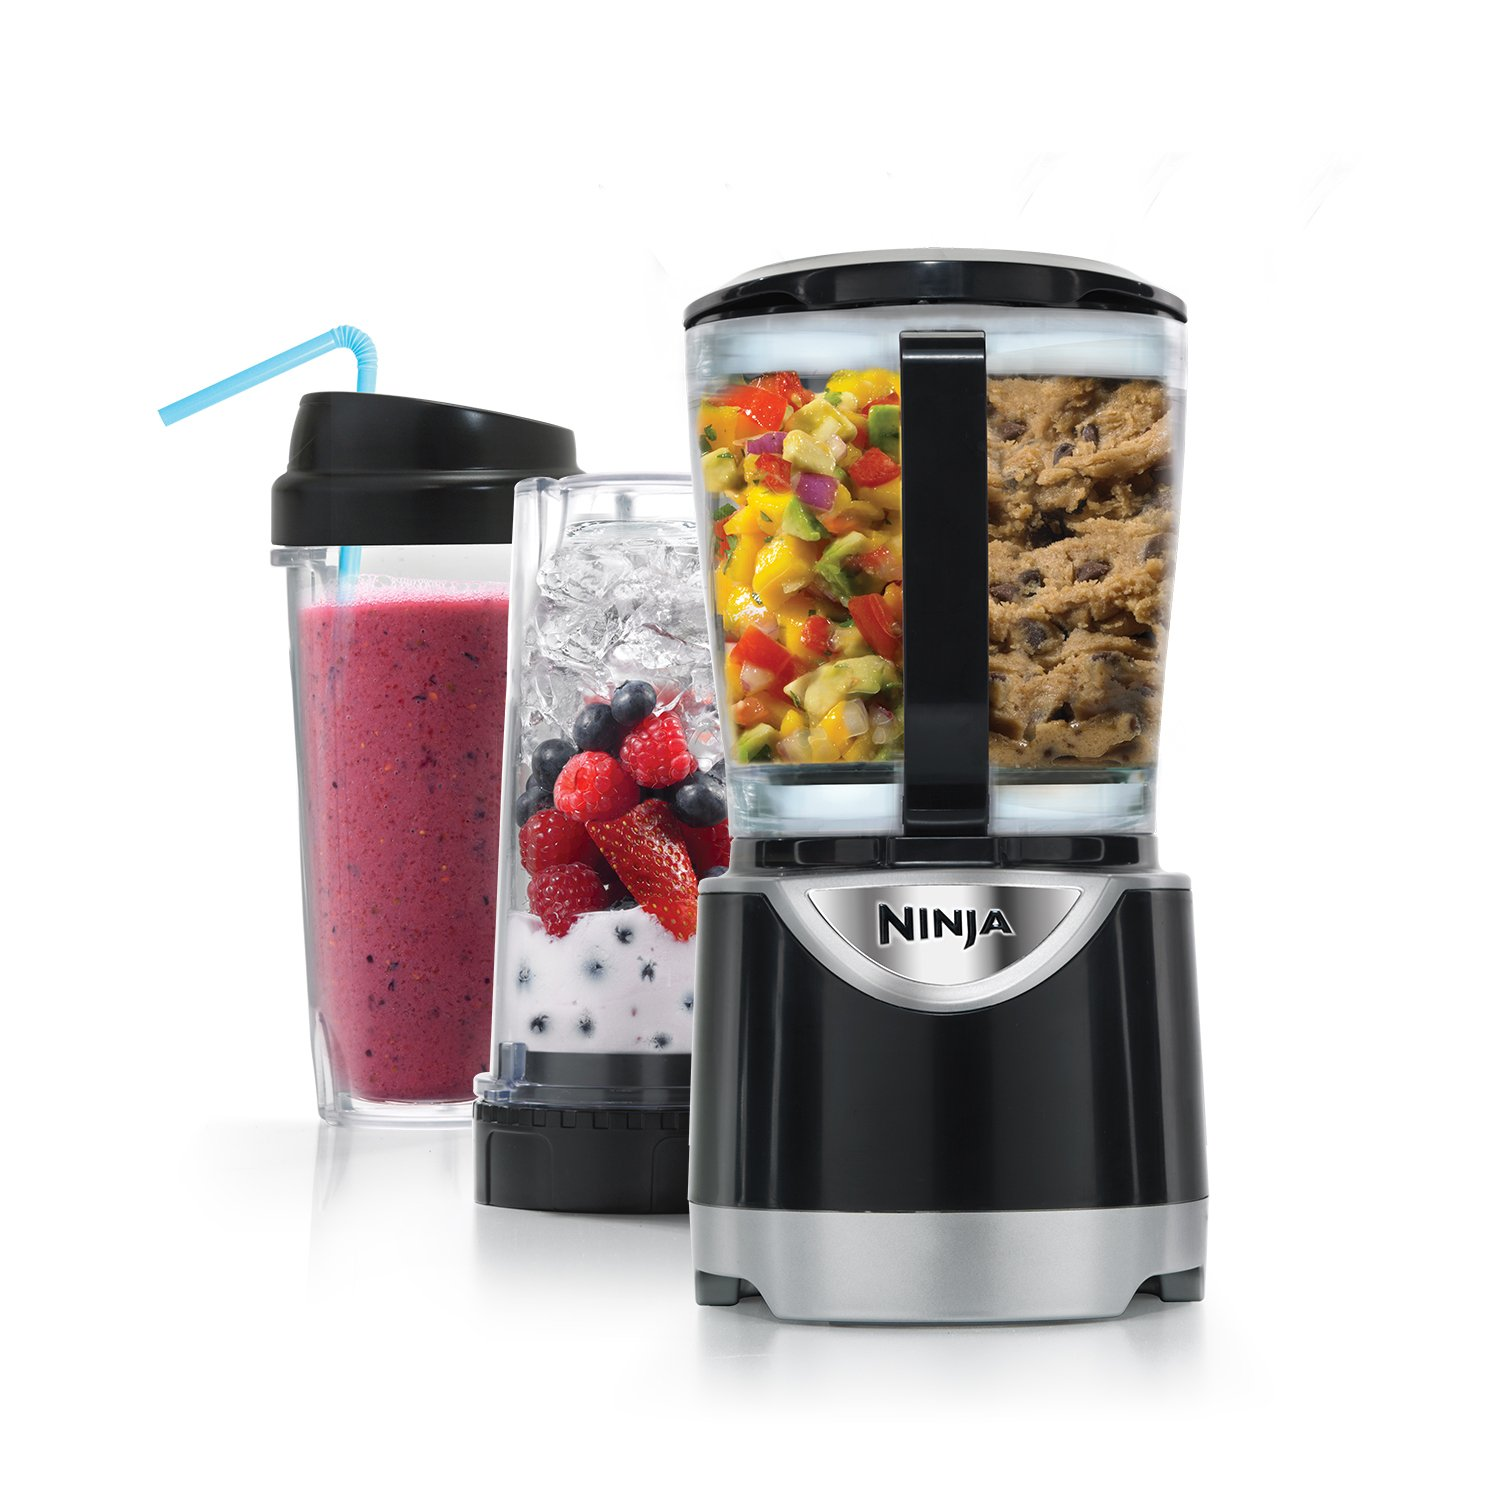 blender and processor | 13 Discount Kitchenware You Must Grab on Cyber Monday